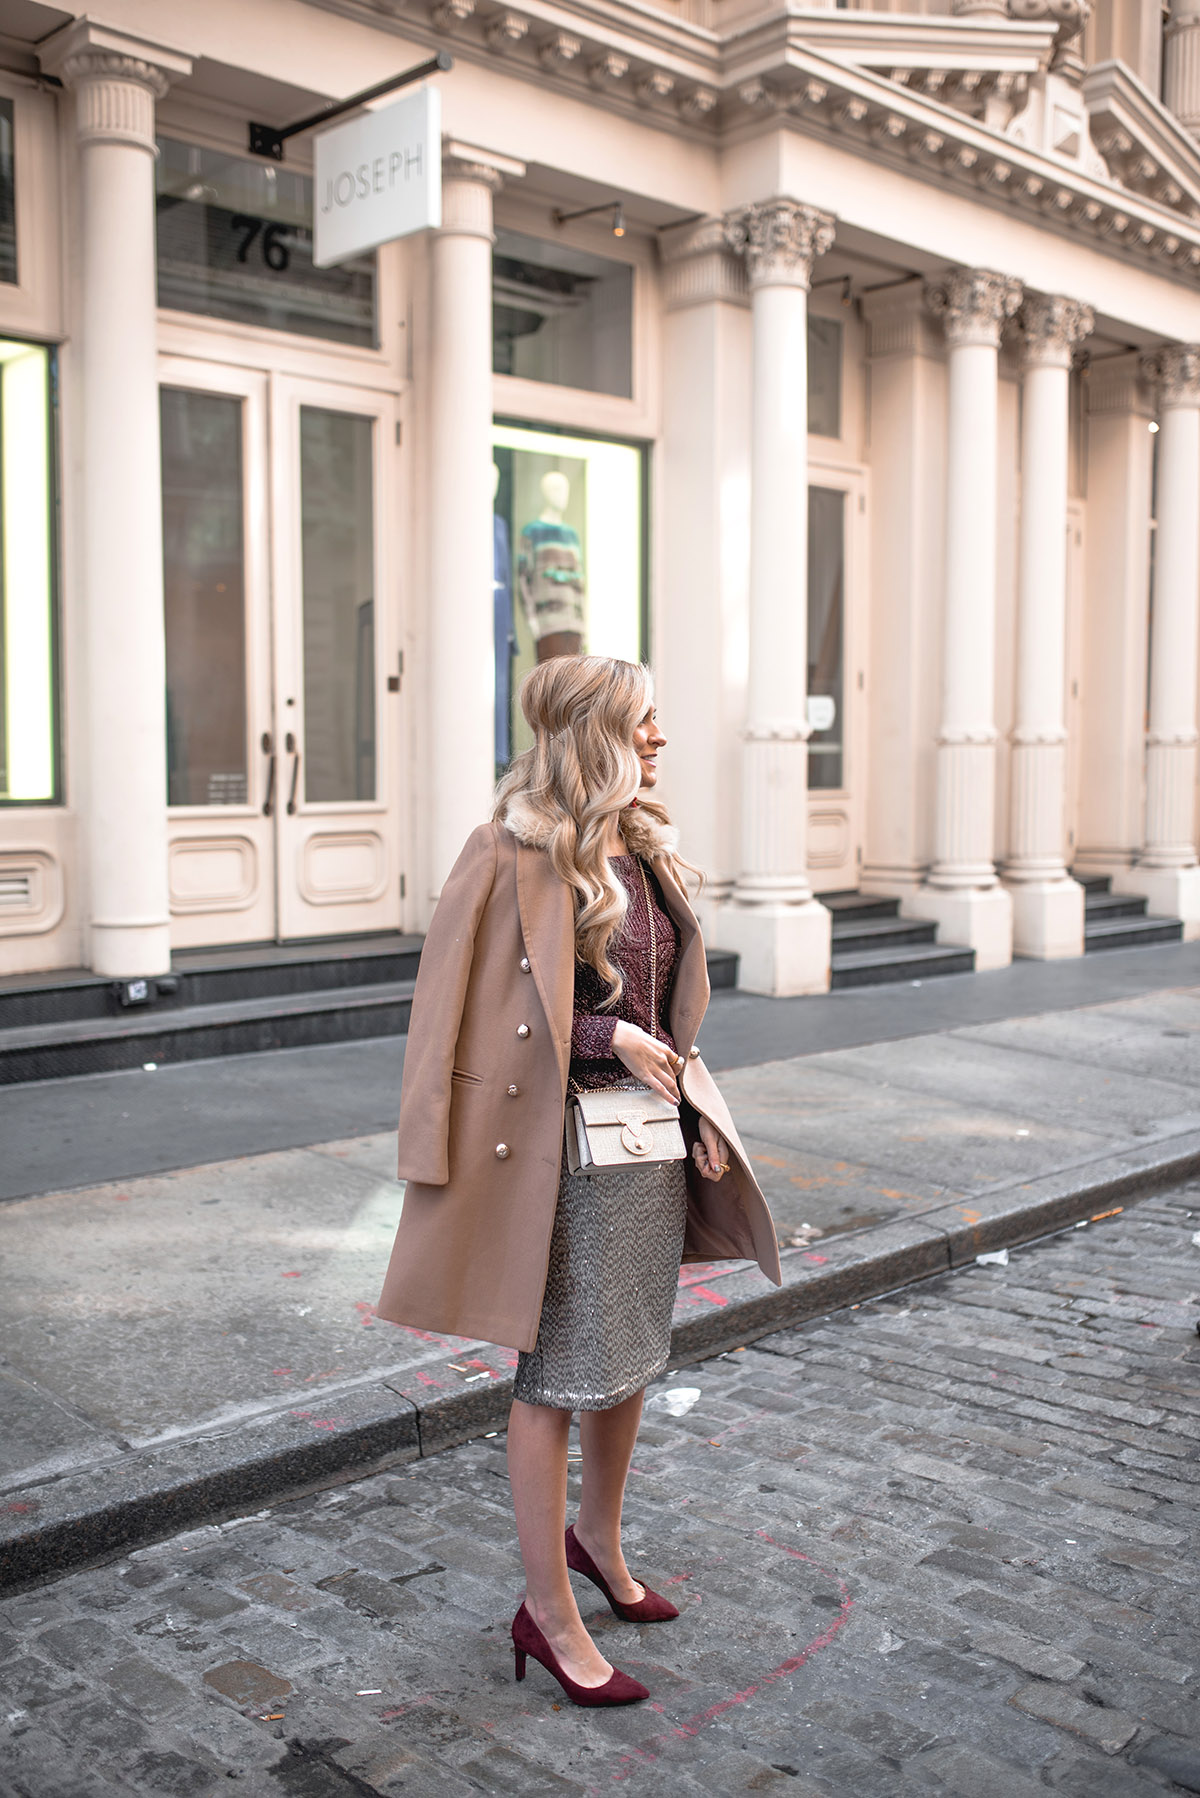 Holiday Party Outfit Ideas | Rockport Suede Pump + Sequin Skirt | How to Add Joy Into Your Everyday